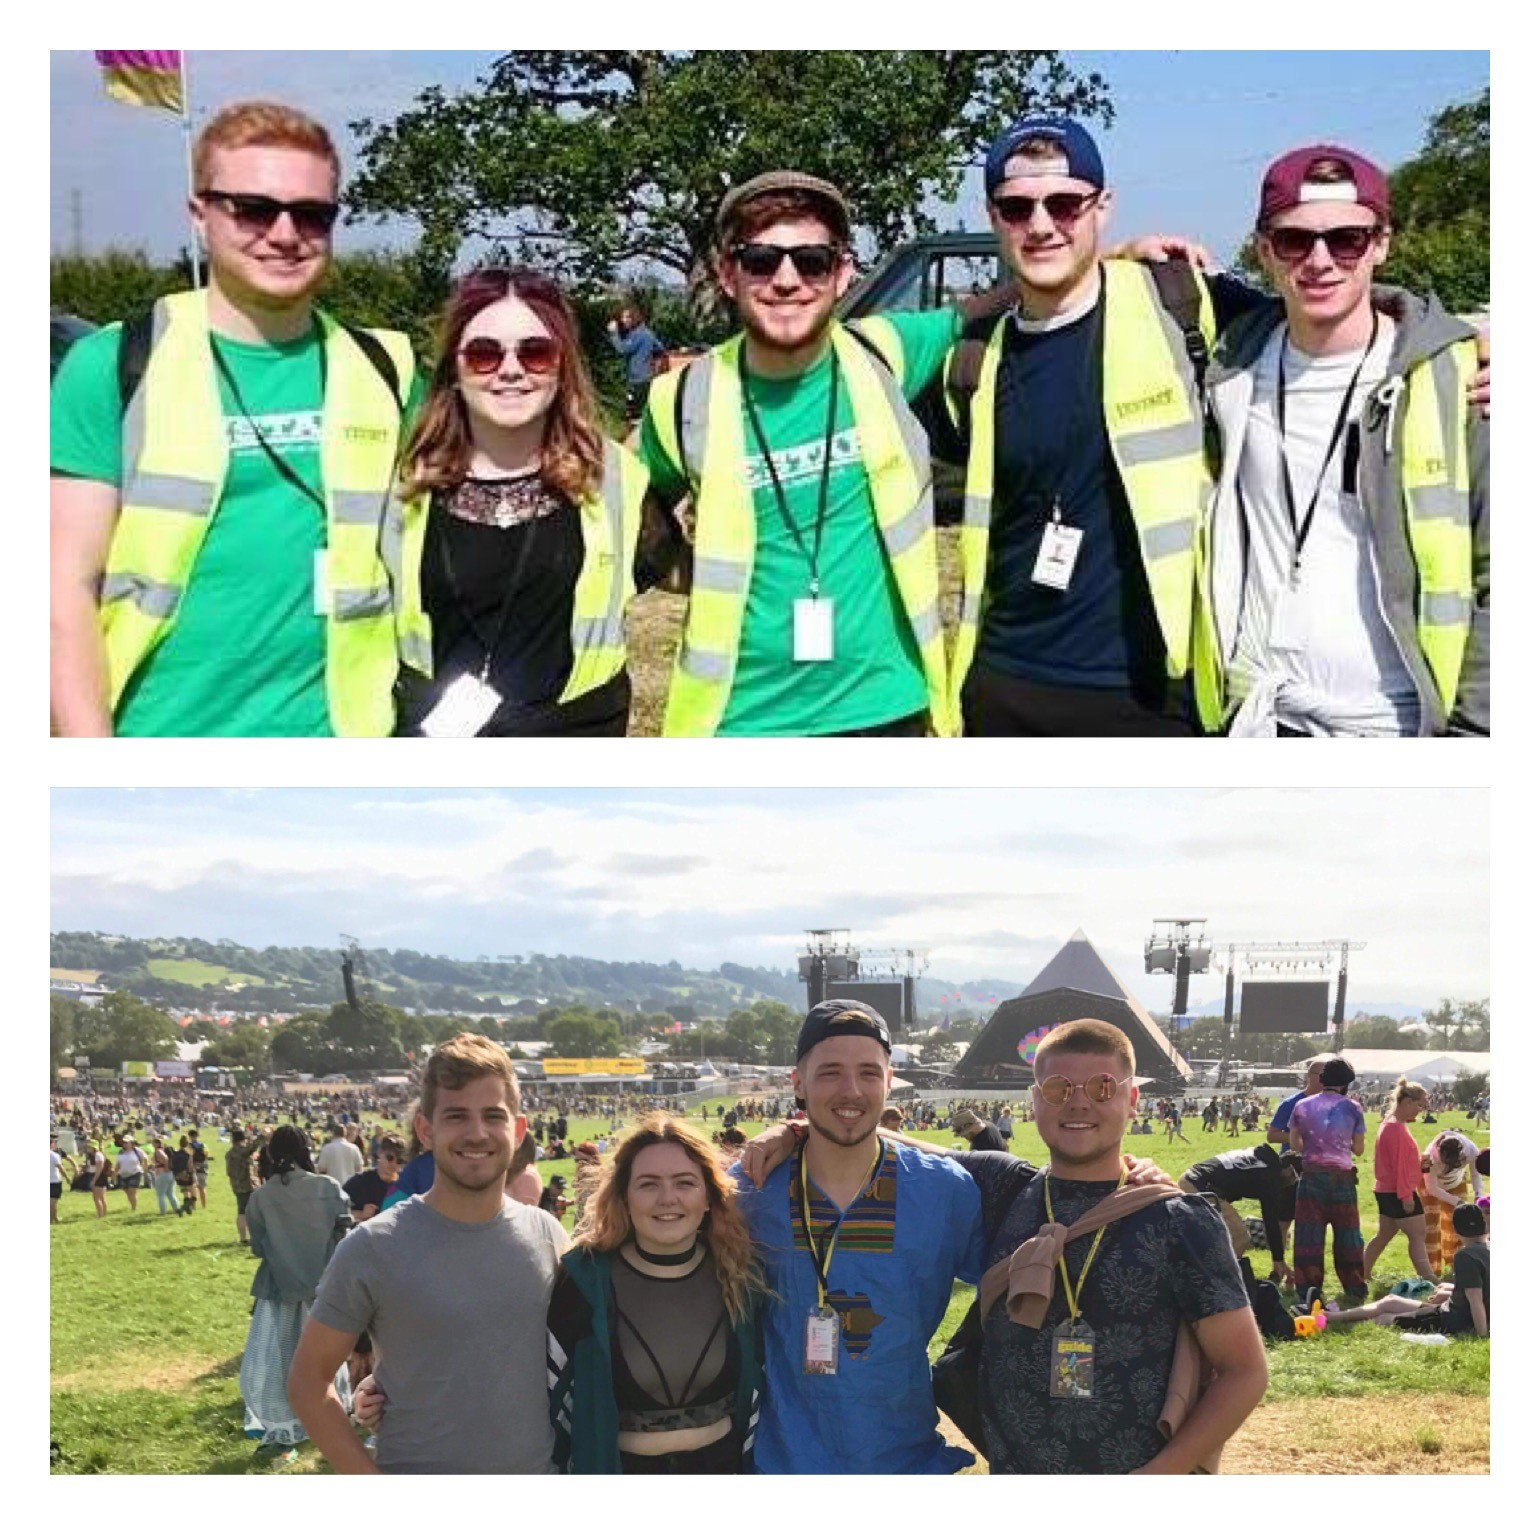 I love festivals - that's why I volunteer